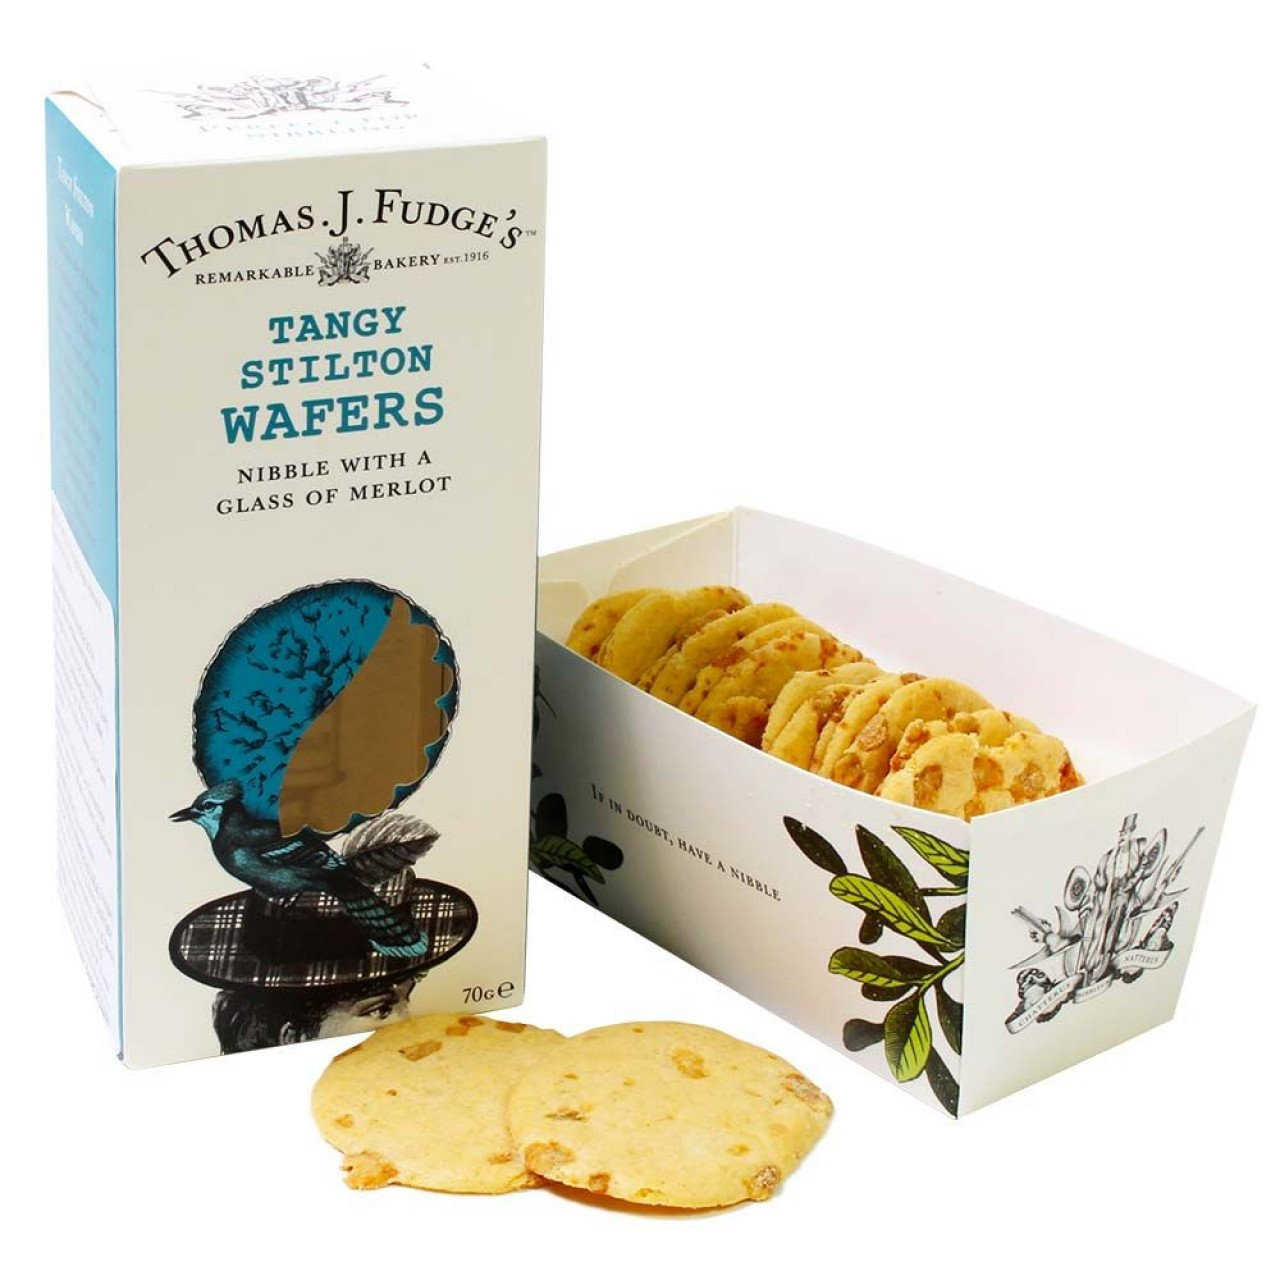 Thomas J Fudge Tangy Stilton Wafers 70 g -  - Chocolats-De-Luxe